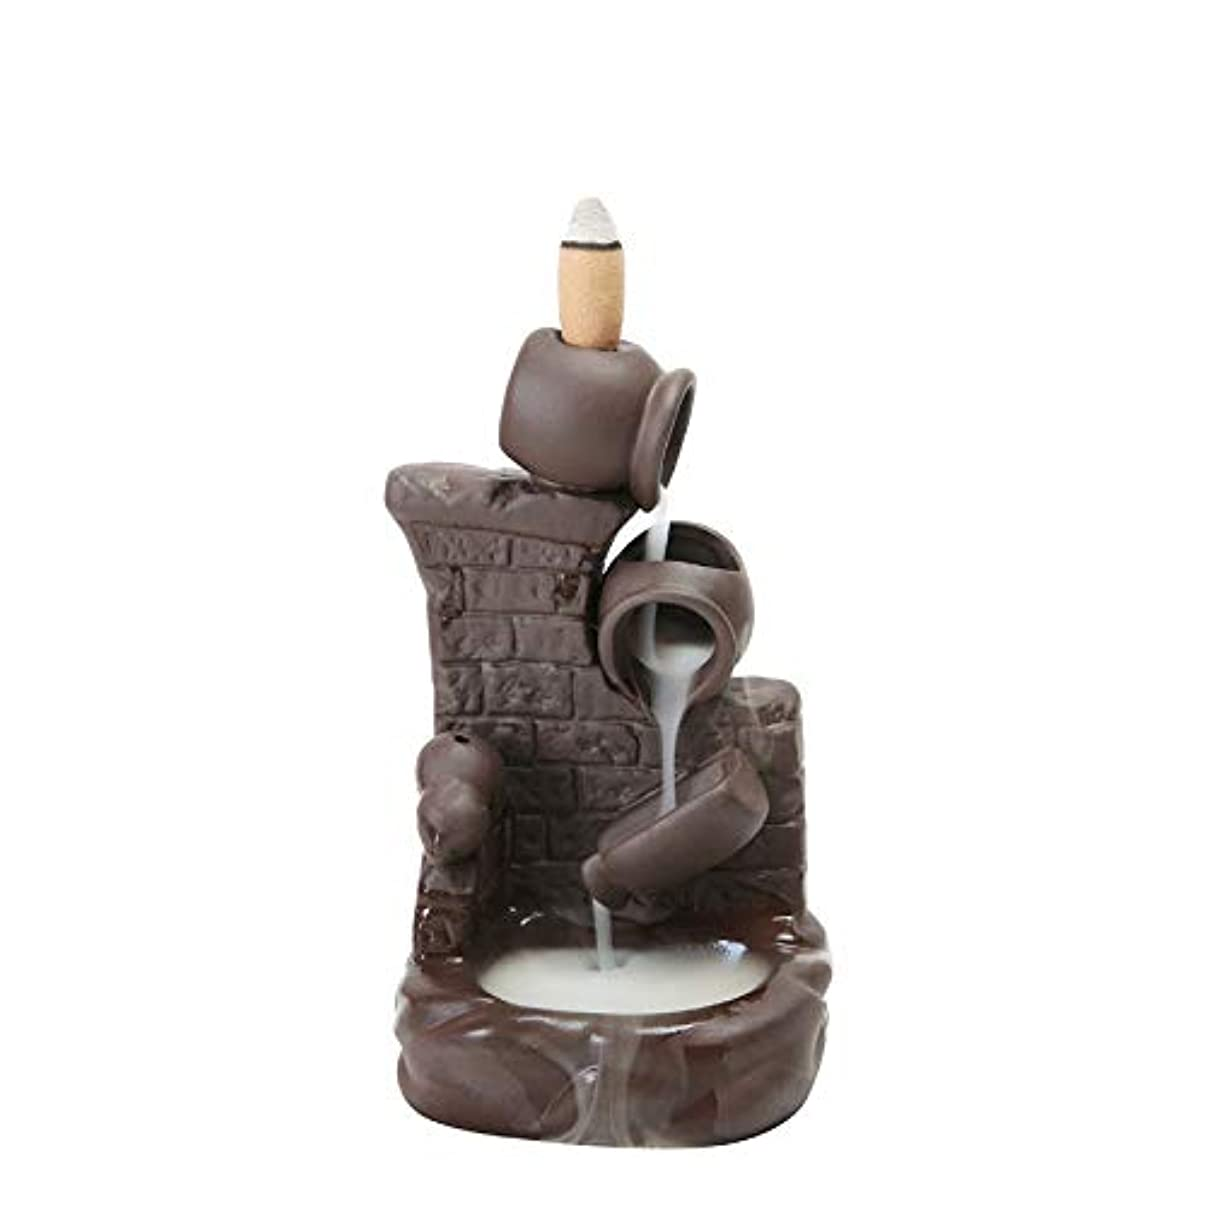 周波数天の心理学(Style 6) - Gift Pro Ceramic Backflow Incense Tower Burner Statue Figurine Incense Holder Incenses Not Included...